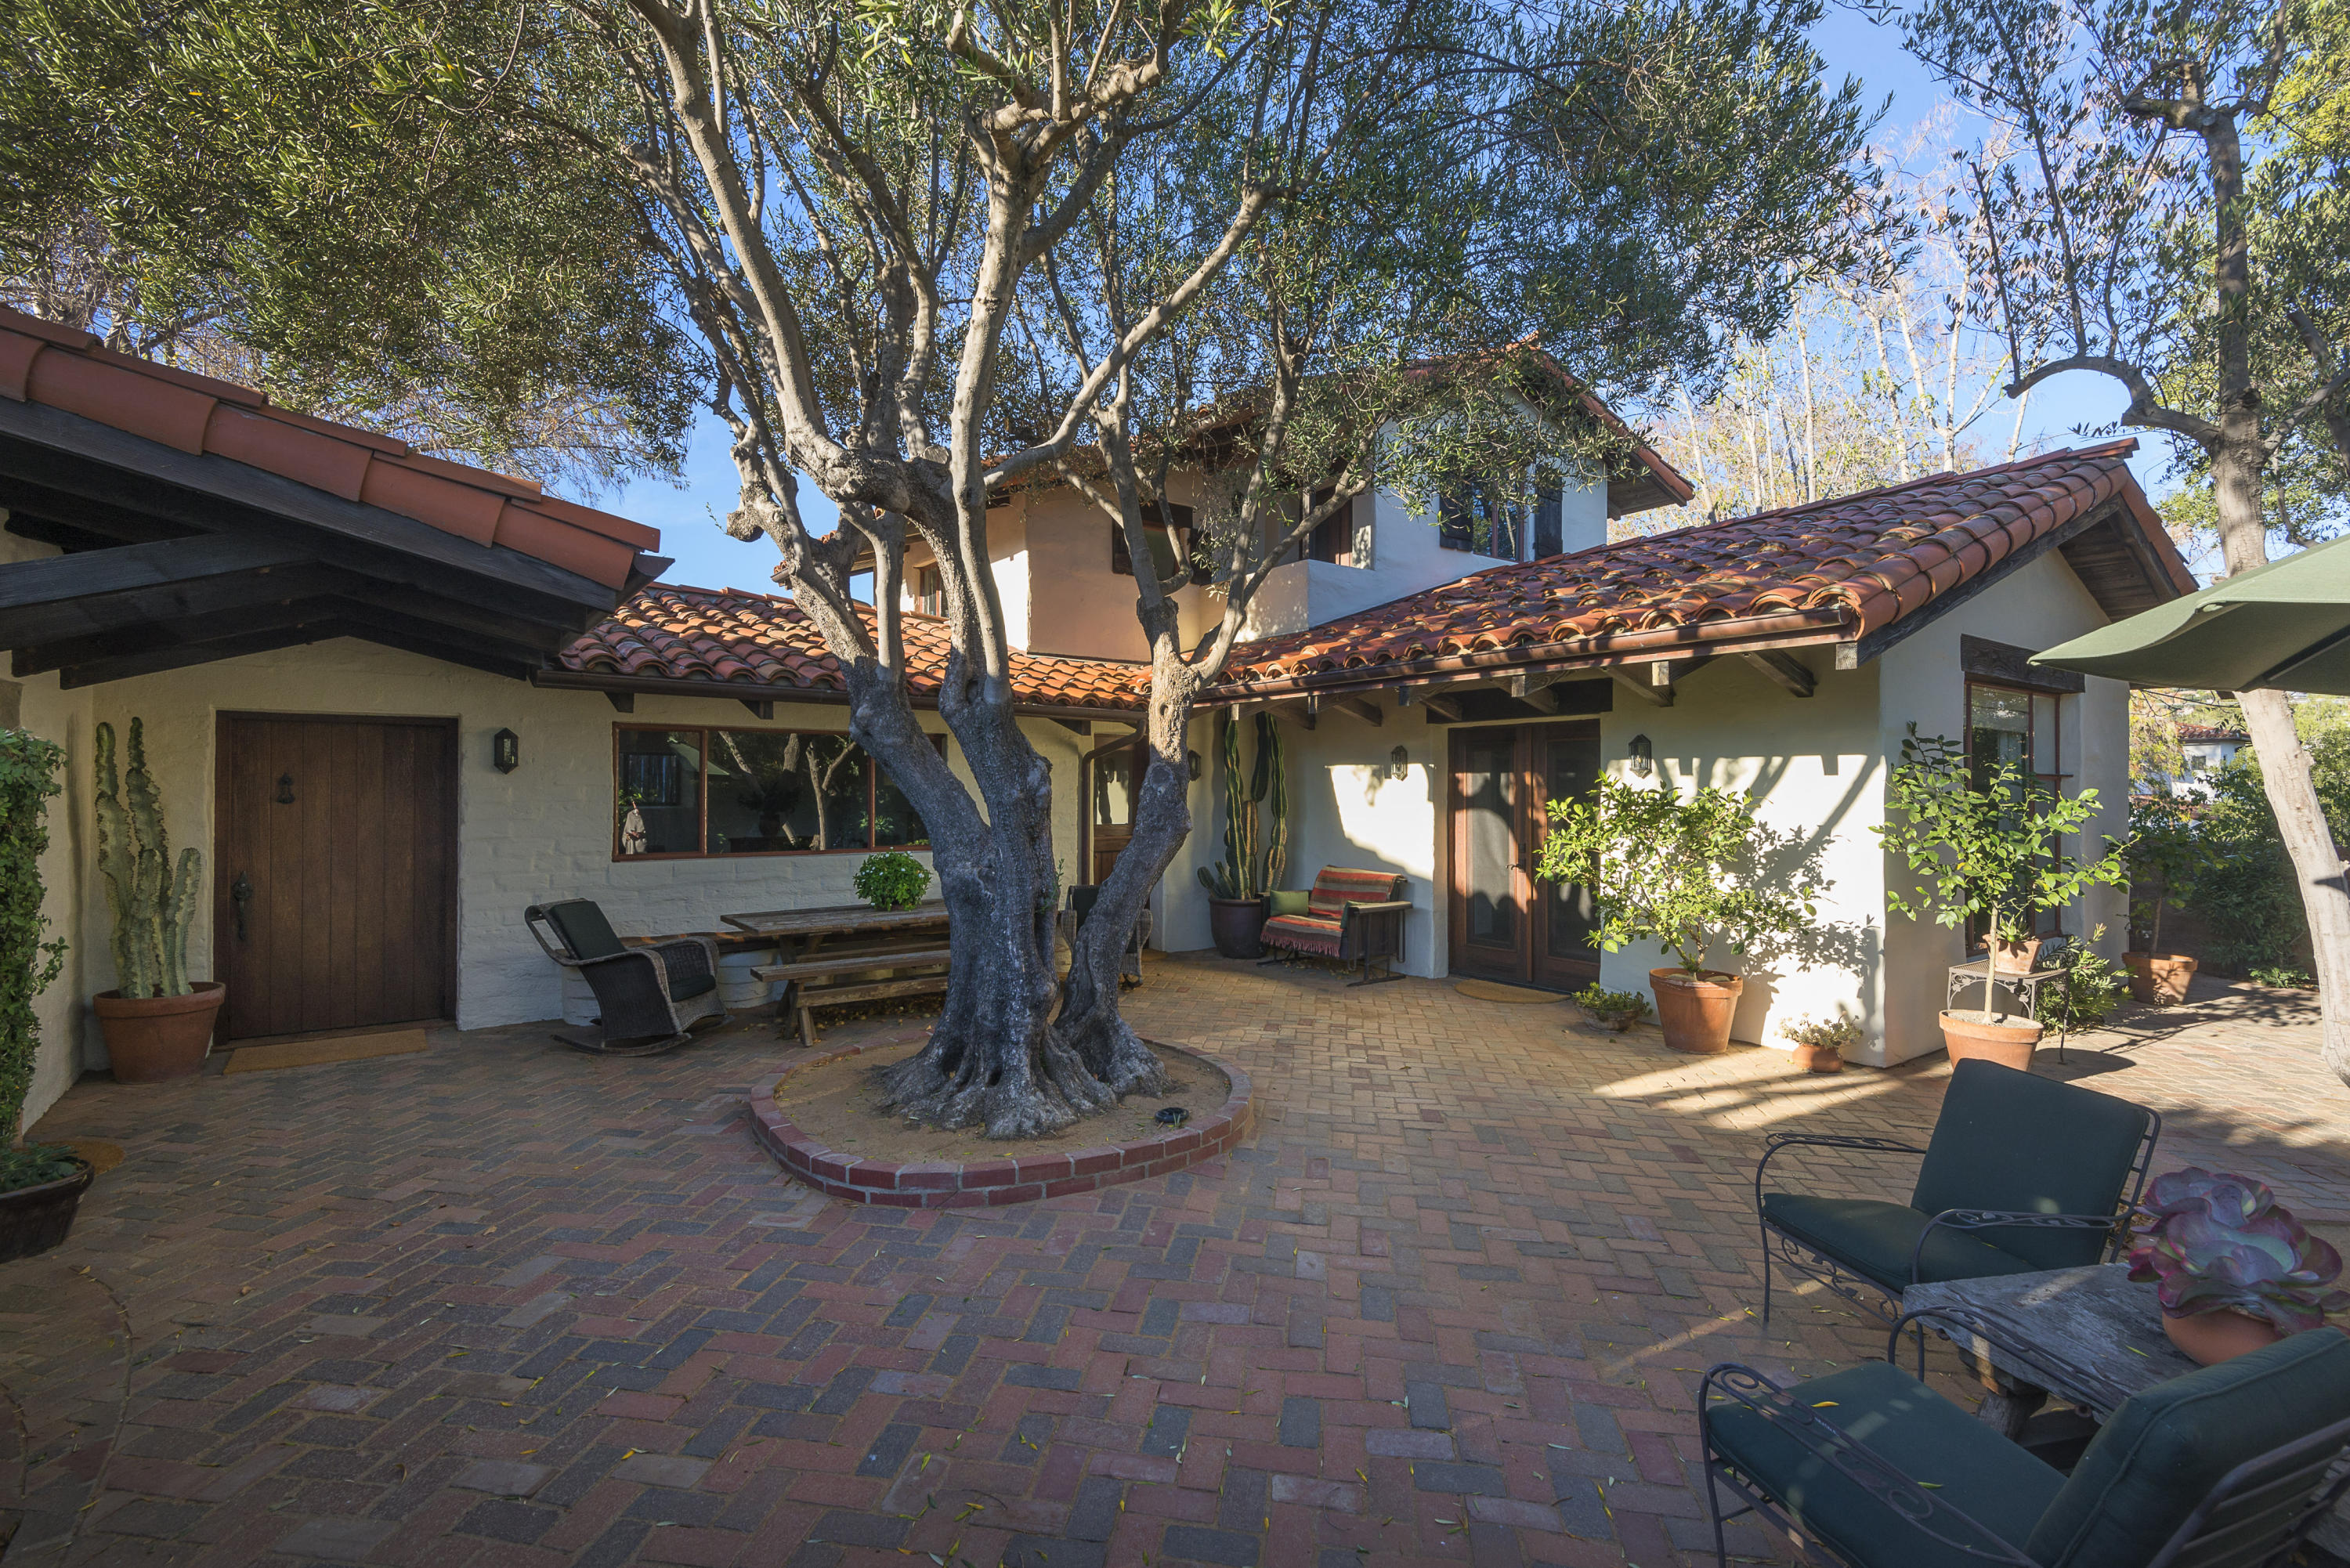 Property photo for 924 Garden St Santa Barbara, California 93101 - 15-3562